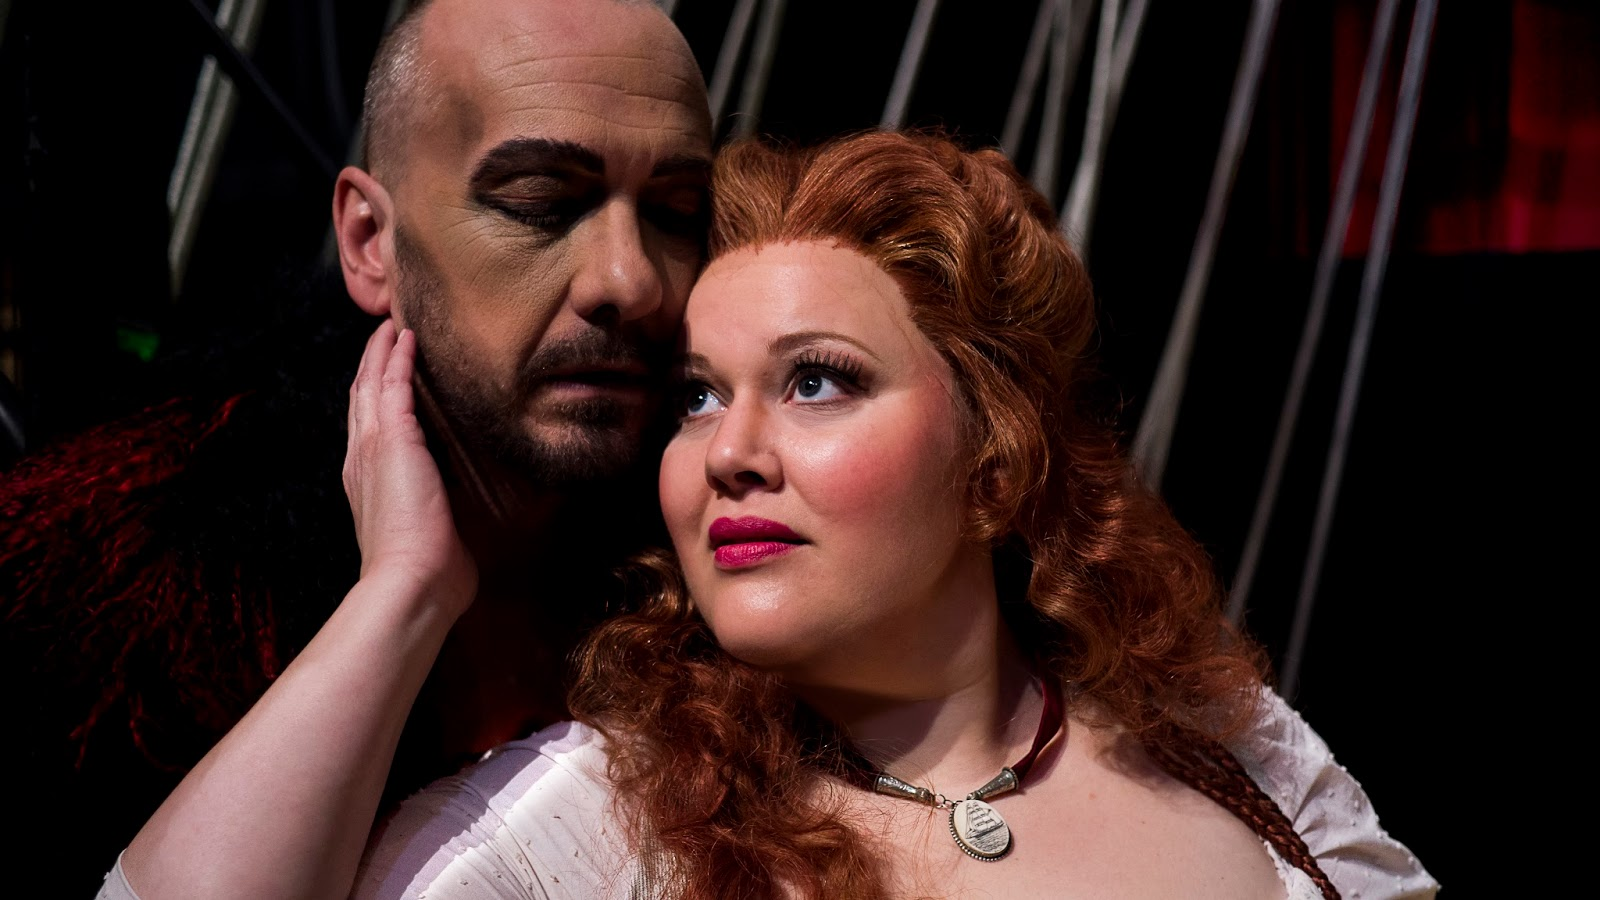 IN PERFORMANCE: Bass-baritone WAYNE TIGGES as Der Holländer (left) and soprano CHRISTINA PIER as Senta (right) in Virginia Opera's production of Richard Wagner's DER FLIEGENDE HOLLÄNDER, April 2016 [Photo by Lucid Frame Productions, © by Virginia Opera]